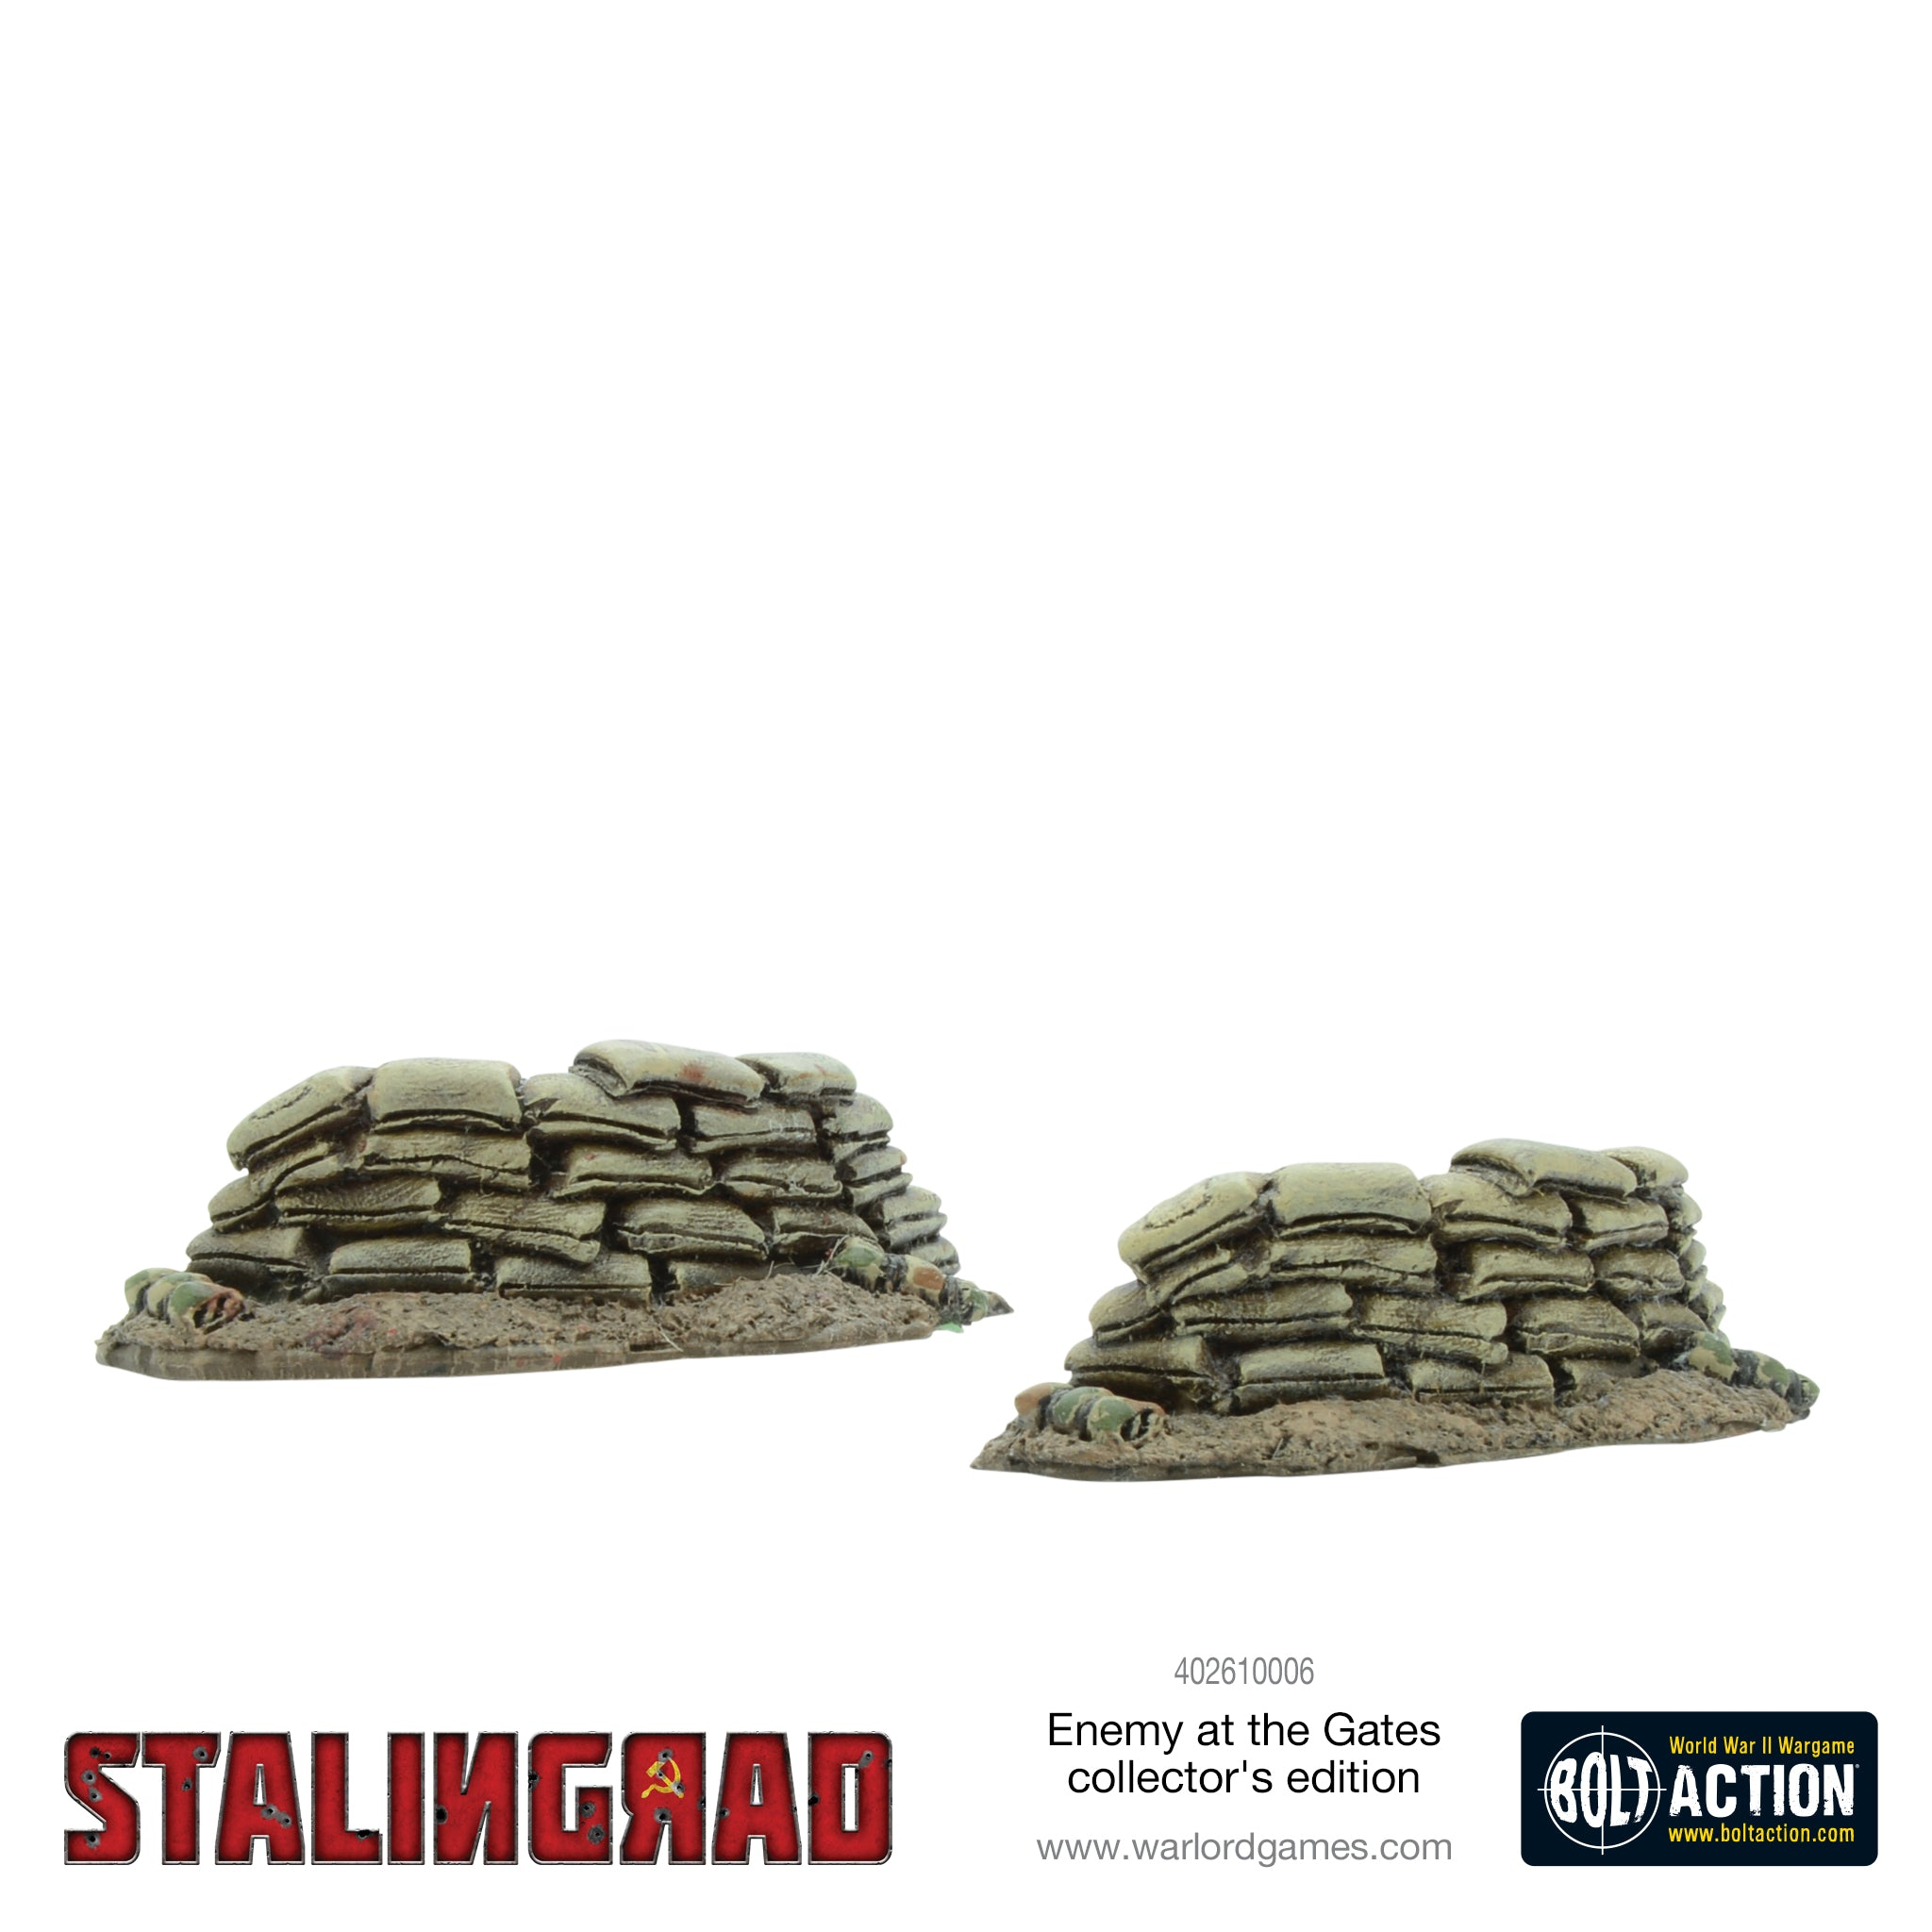 Enemy at the Gates - Stalingrad battle-set collectors edition